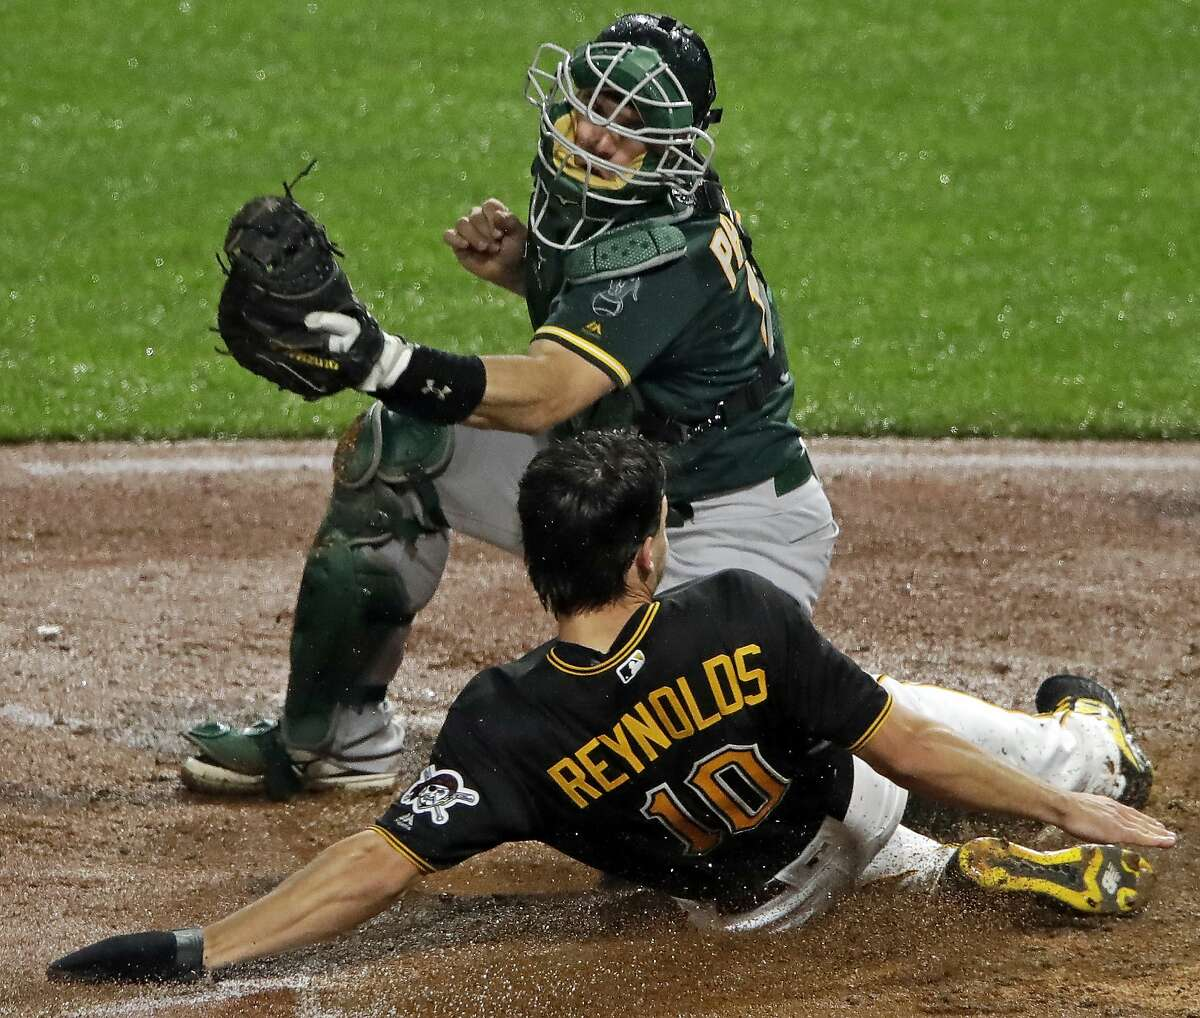 Pittsburgh Pirates' Bryan Reynolds (10) scores ahead of the tag by Oakland Athletics catcher Josh Phegley, the second of two runs on a double by Kevin Newman off Athletics relief pitcher J.B. Wendelken during the seventh inning of a baseball game in Pittsburgh, Saturday, May 4, 2019. (AP Photo/Gene J. Puskar)